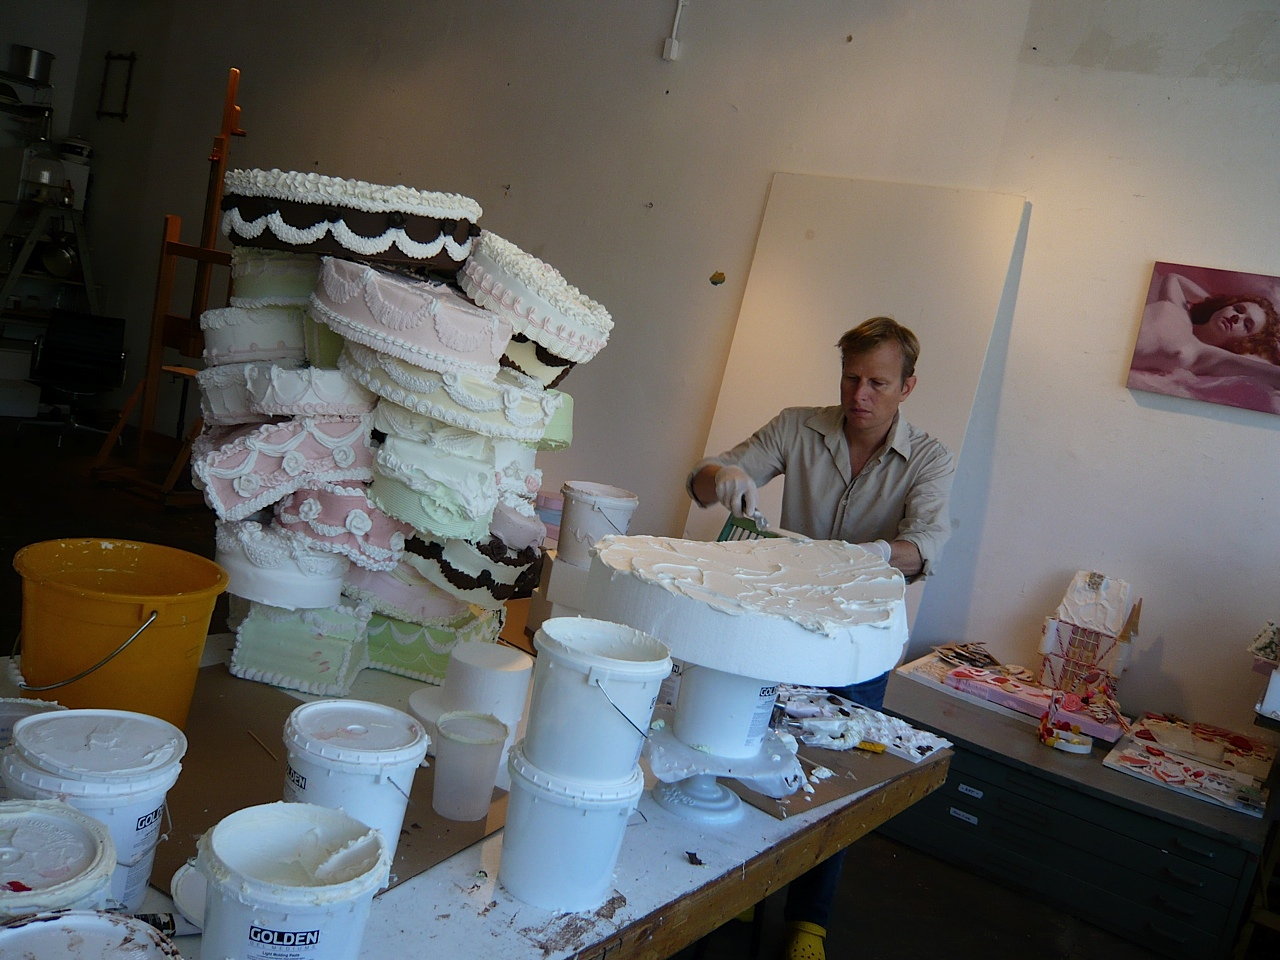 the artist Will Cotton in his studio circa 2012